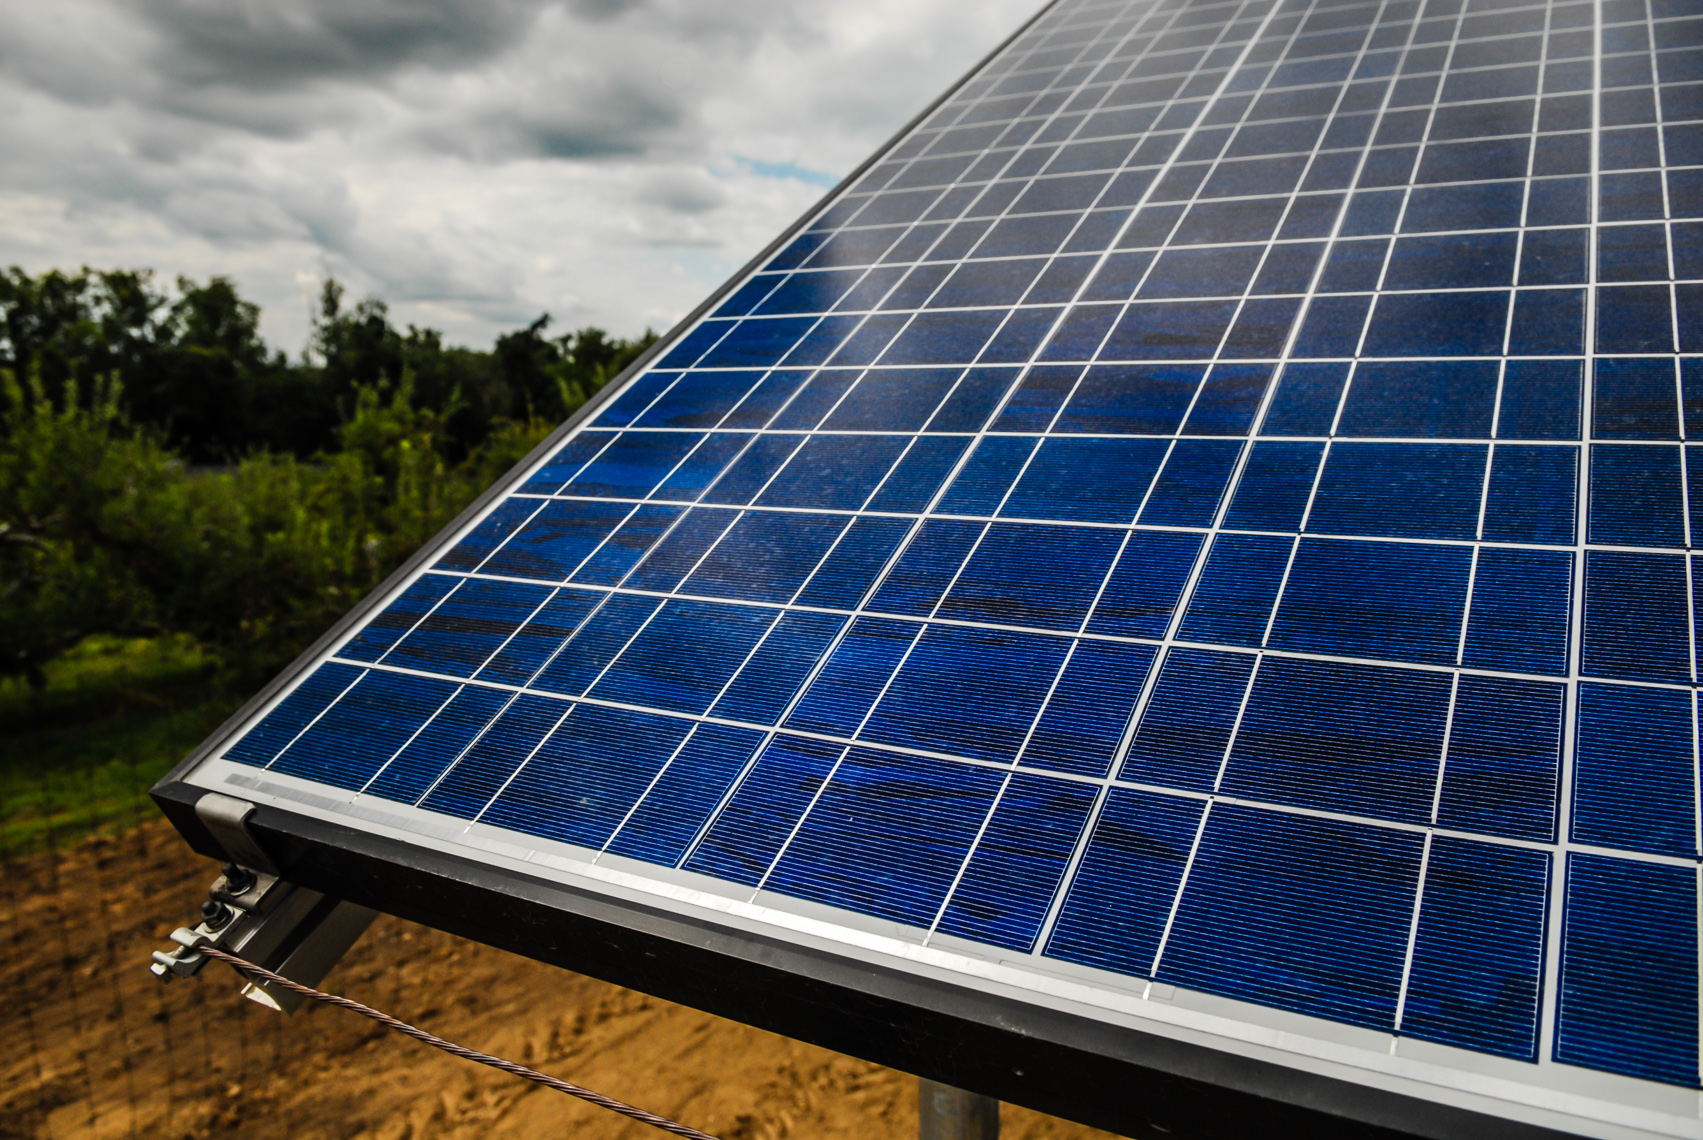 Photovoltaic Construction Photography | Commercial Photography in the Solar Industry